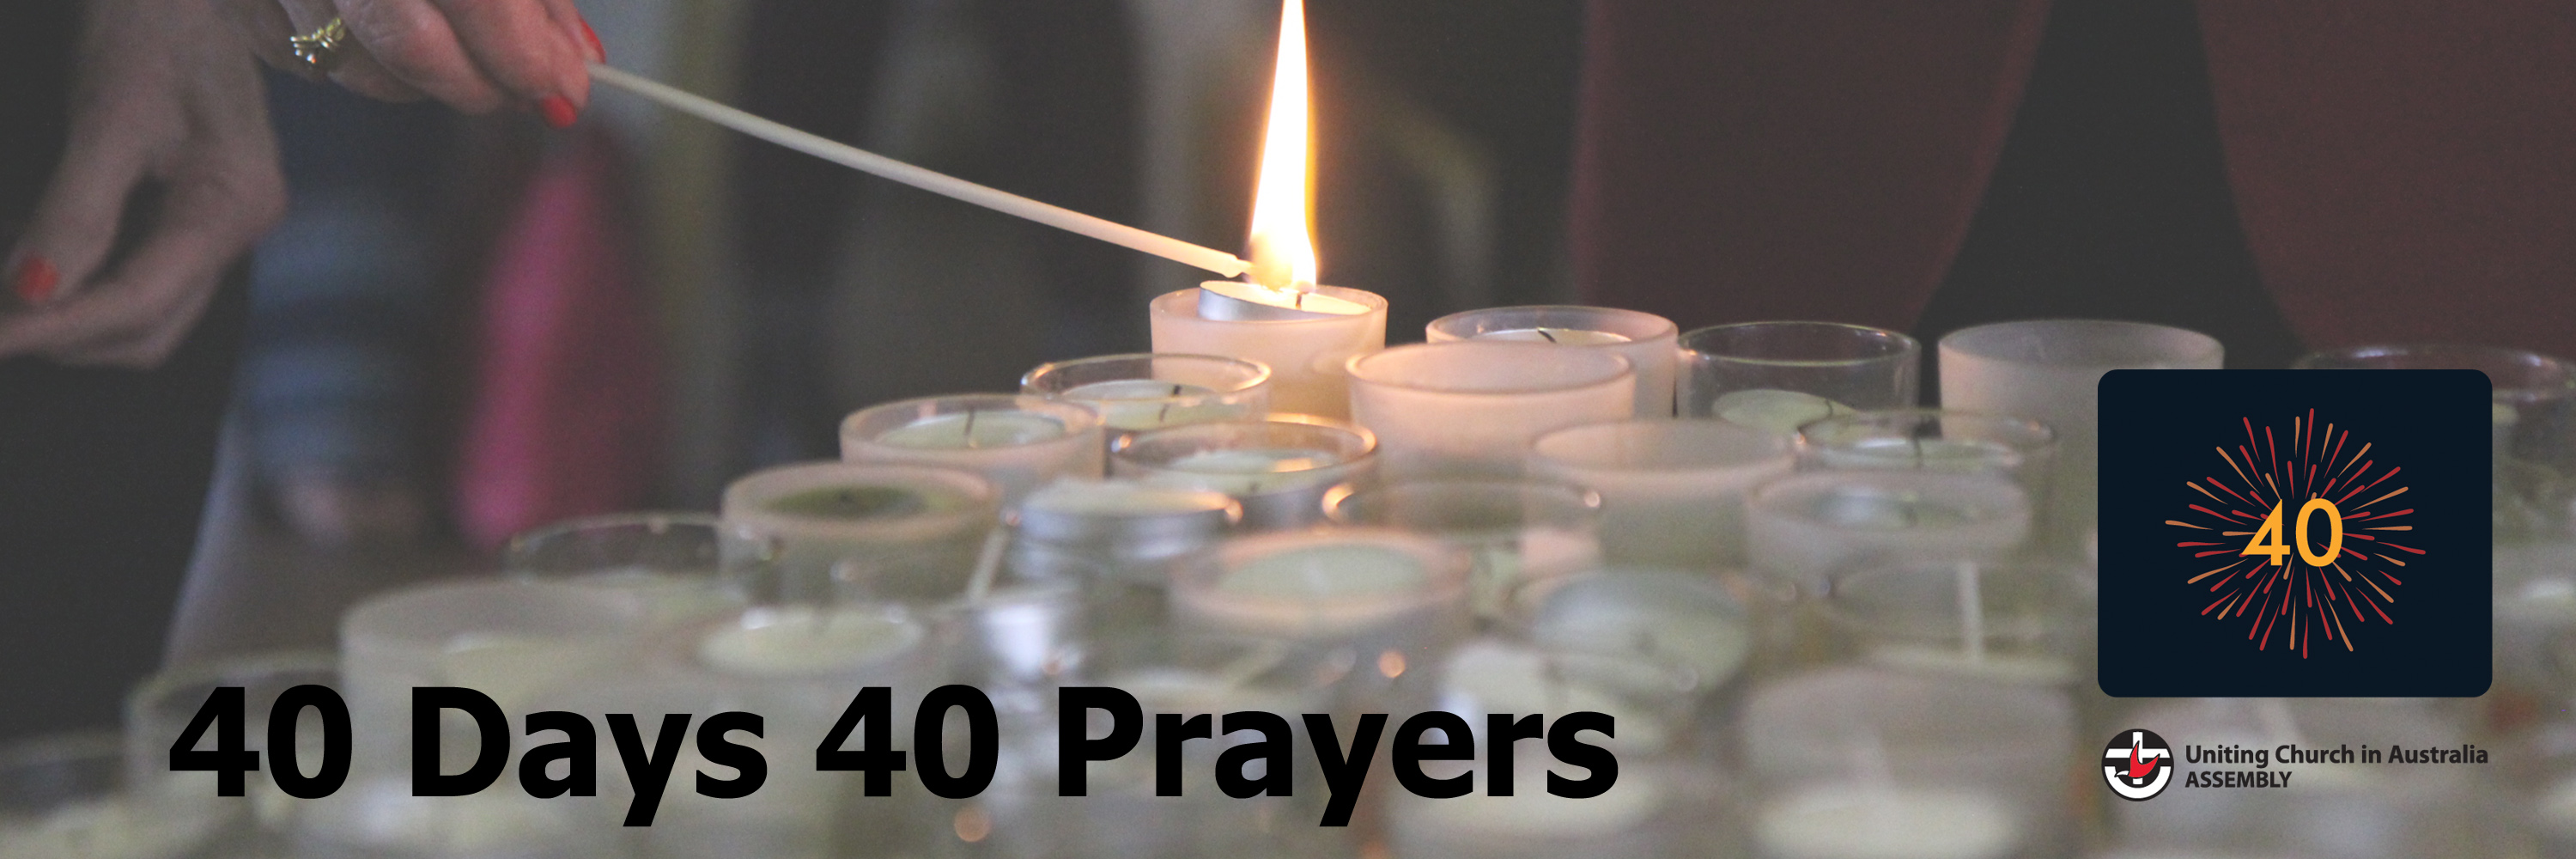 40Days40Prayers